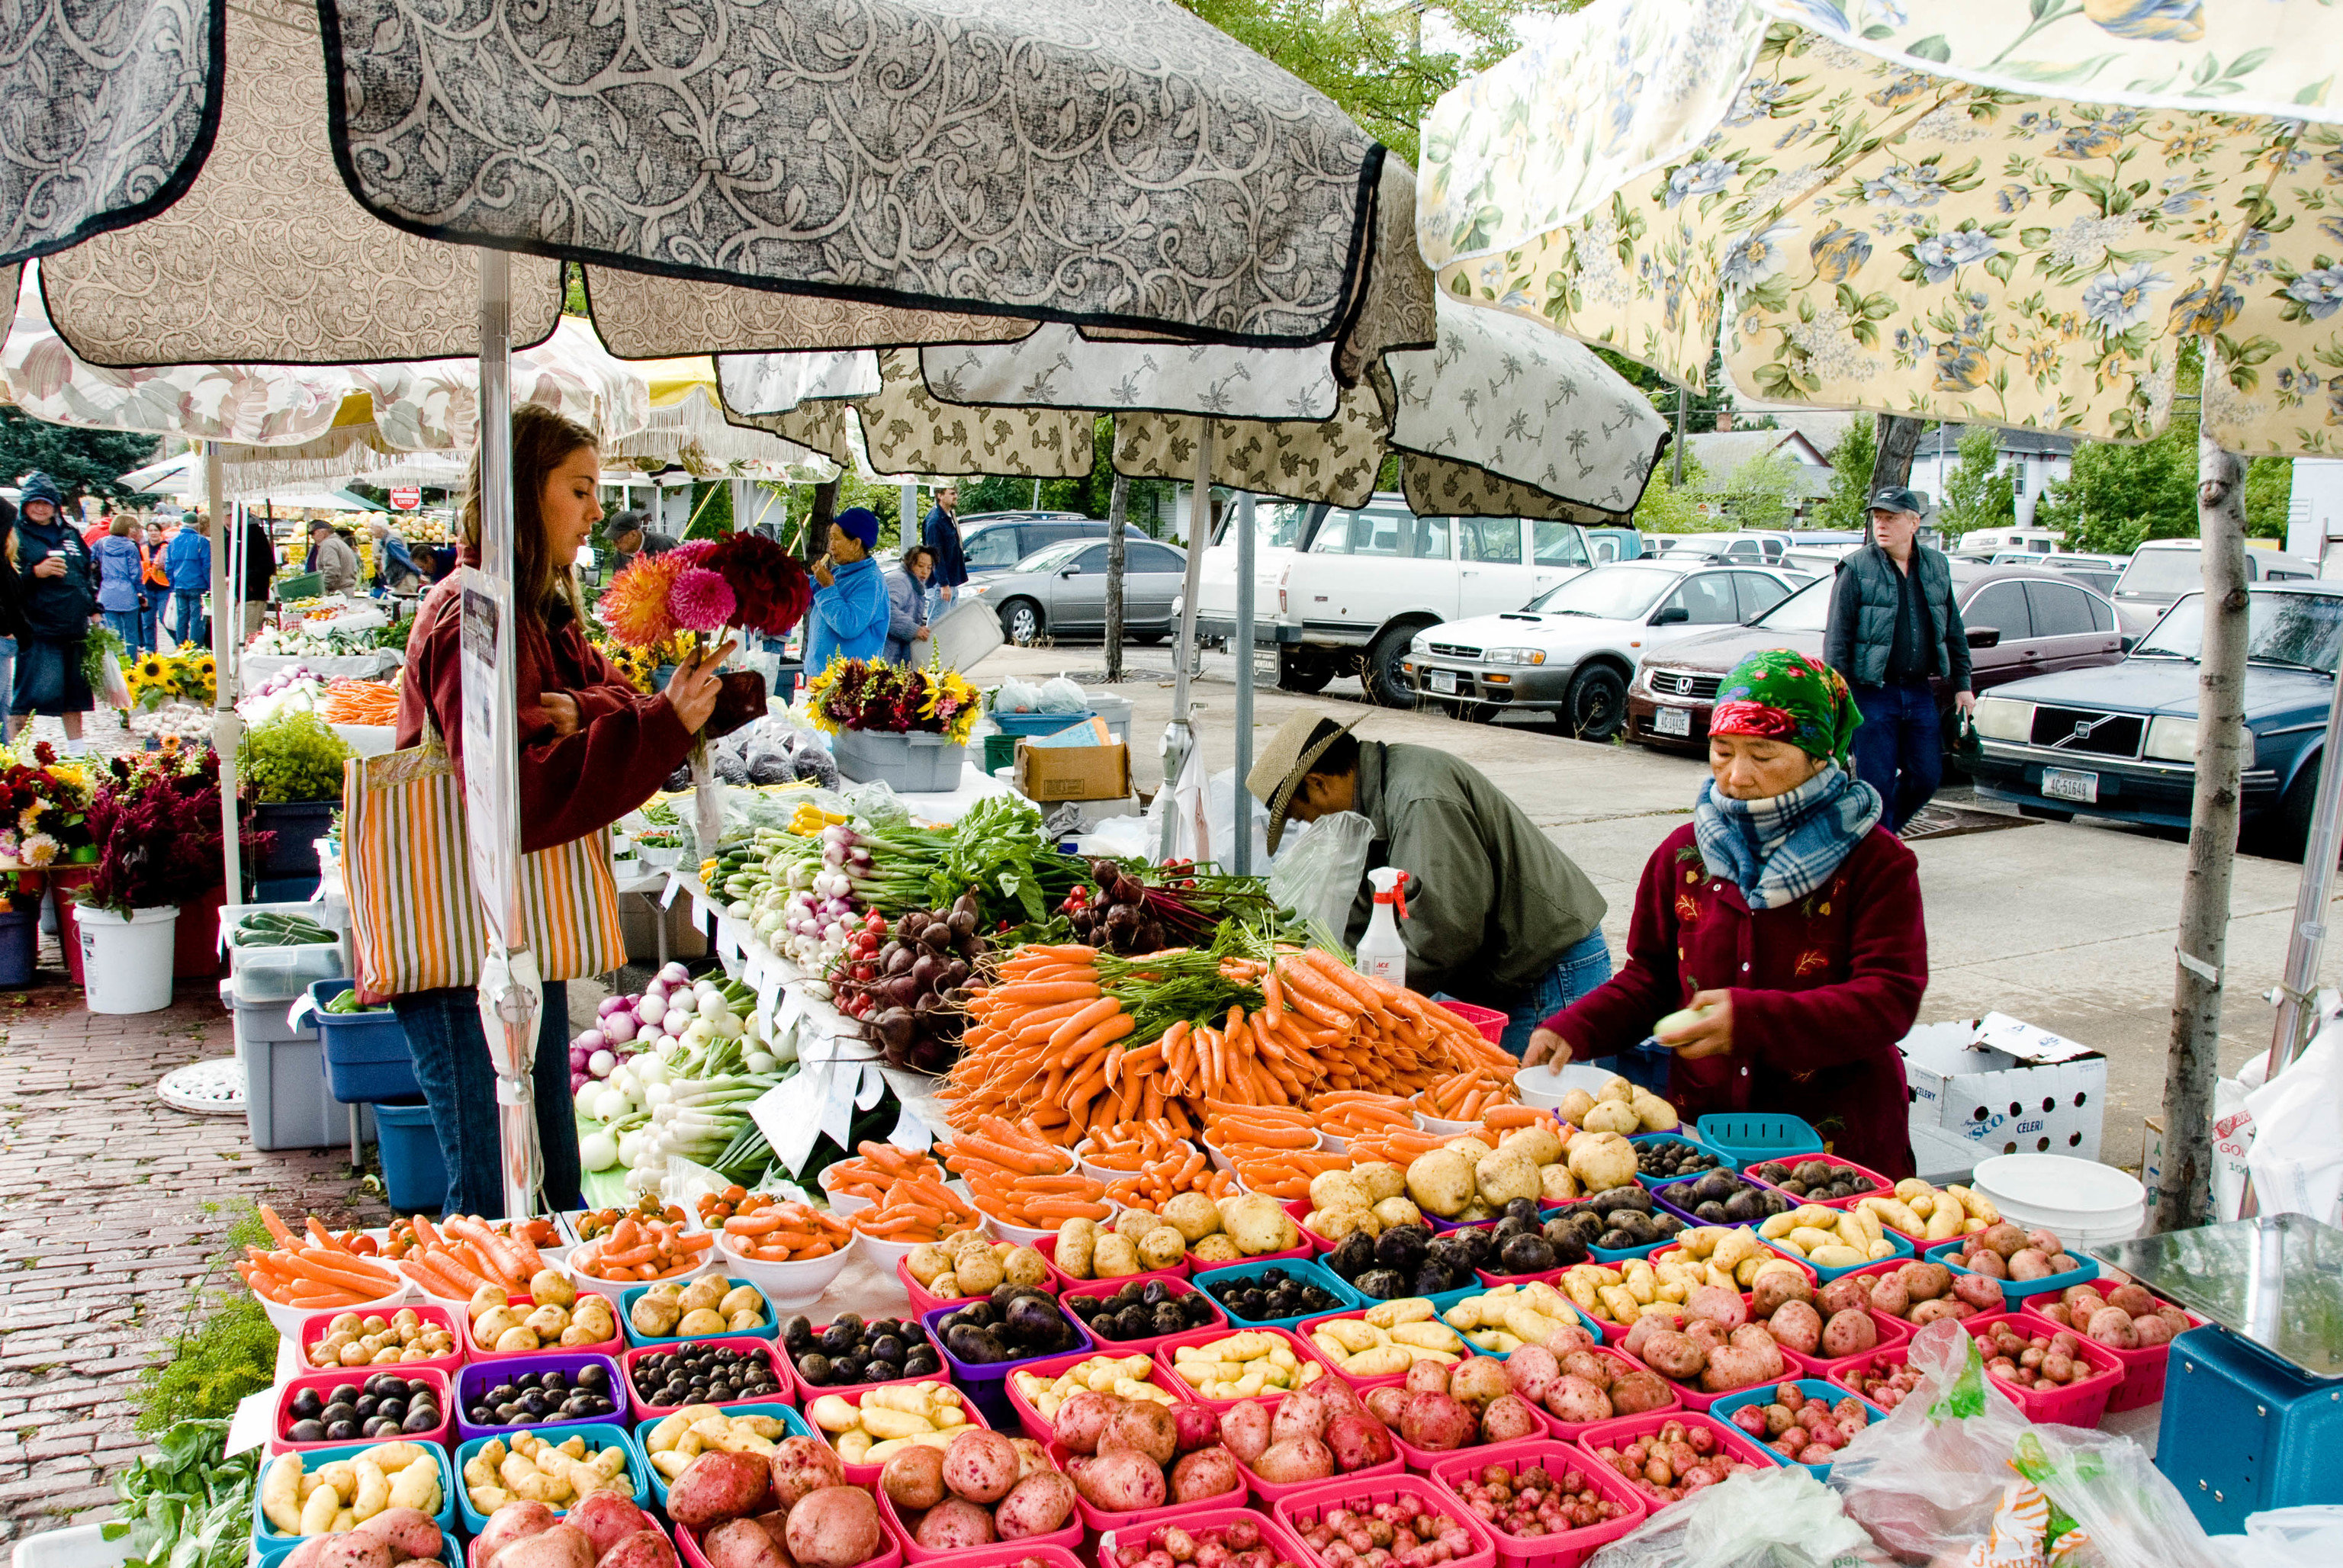 Trip Ideas marketplace market outdoor produce public space vendor stall bazaar scene food local food City fruit greengrocer vegetable brunch colorful fresh